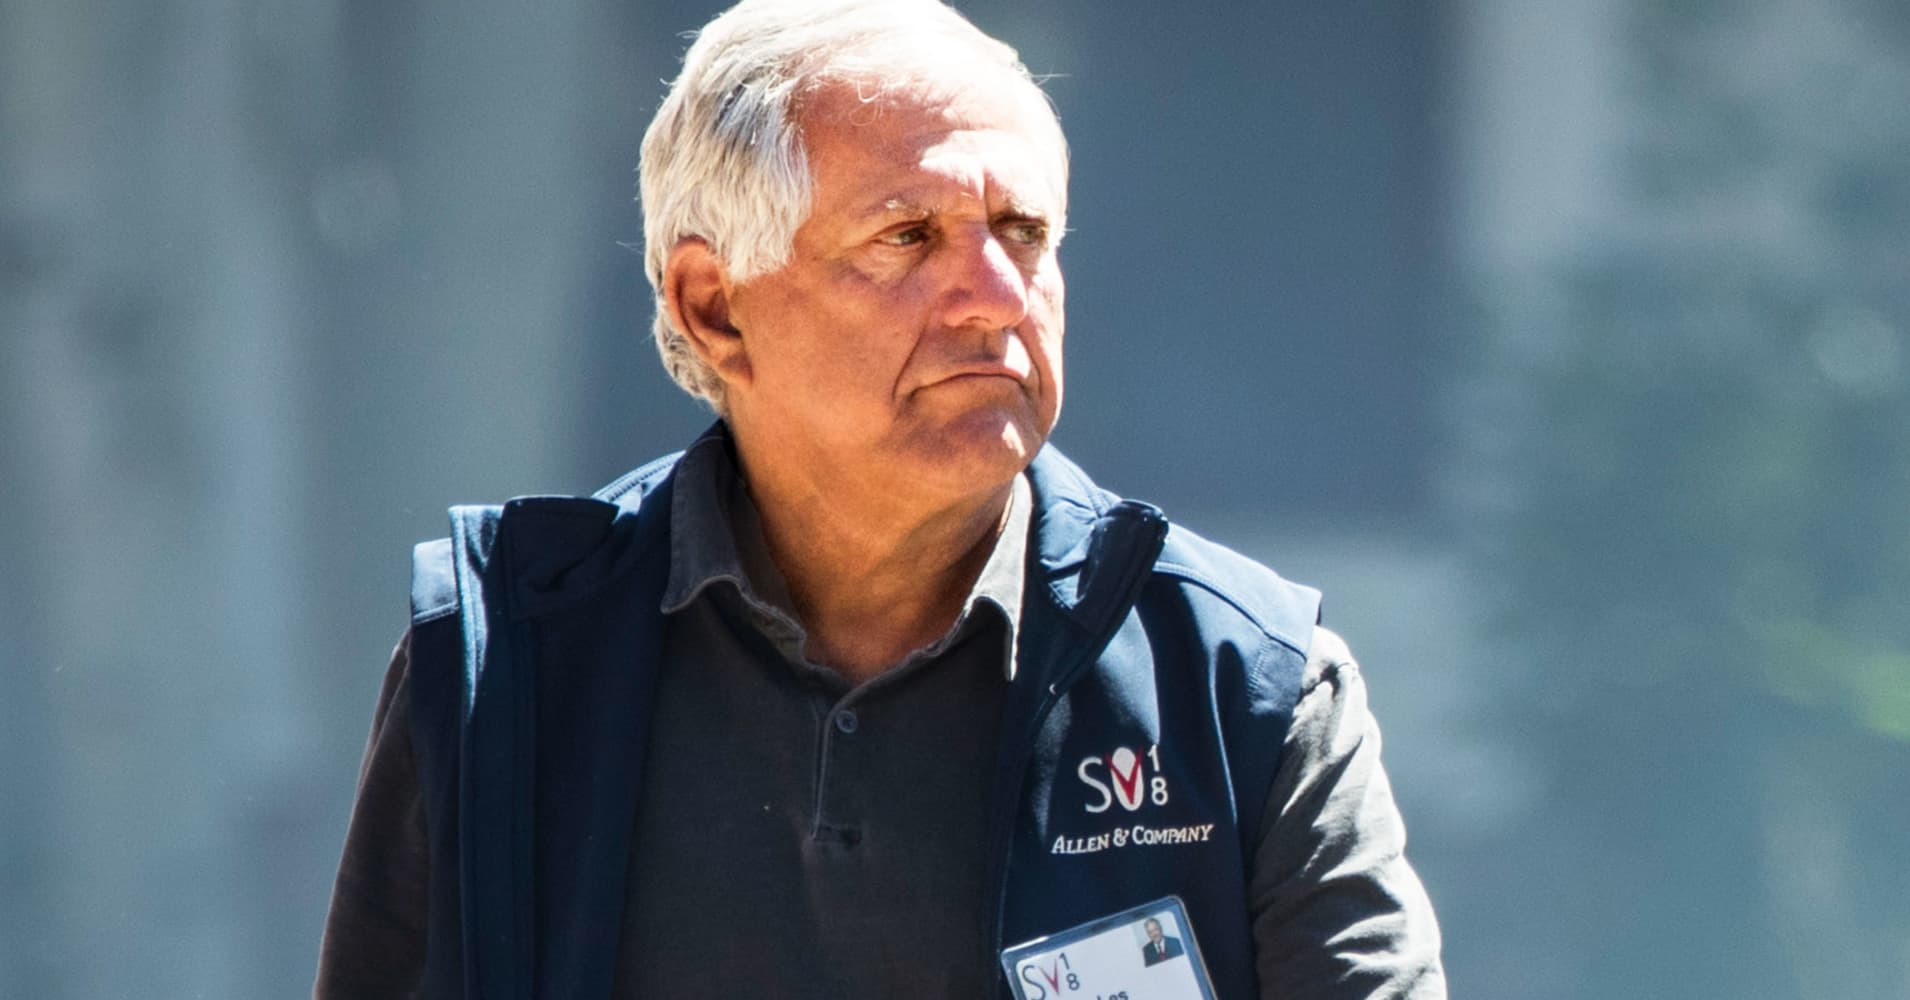 CBS says former CEO Les Moonves will not receive severance pay after sexual misconduct probe